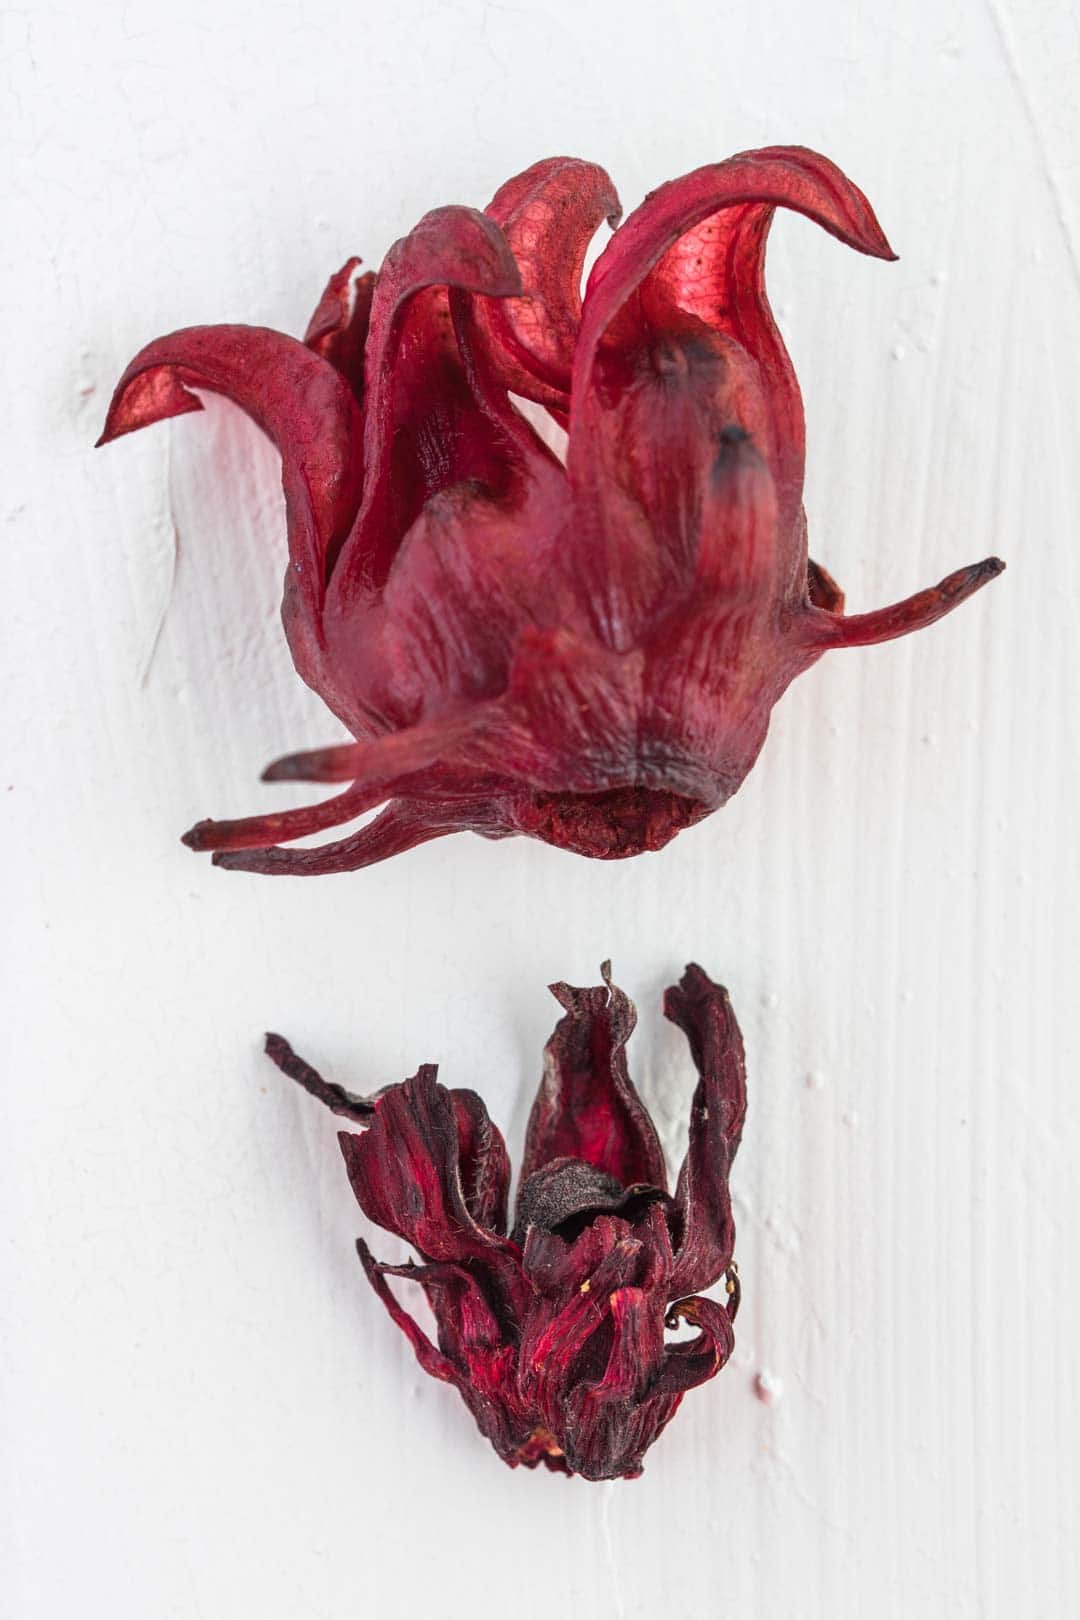 the comparison between the sizes of a cooked roselle flower and a dried roselle flower